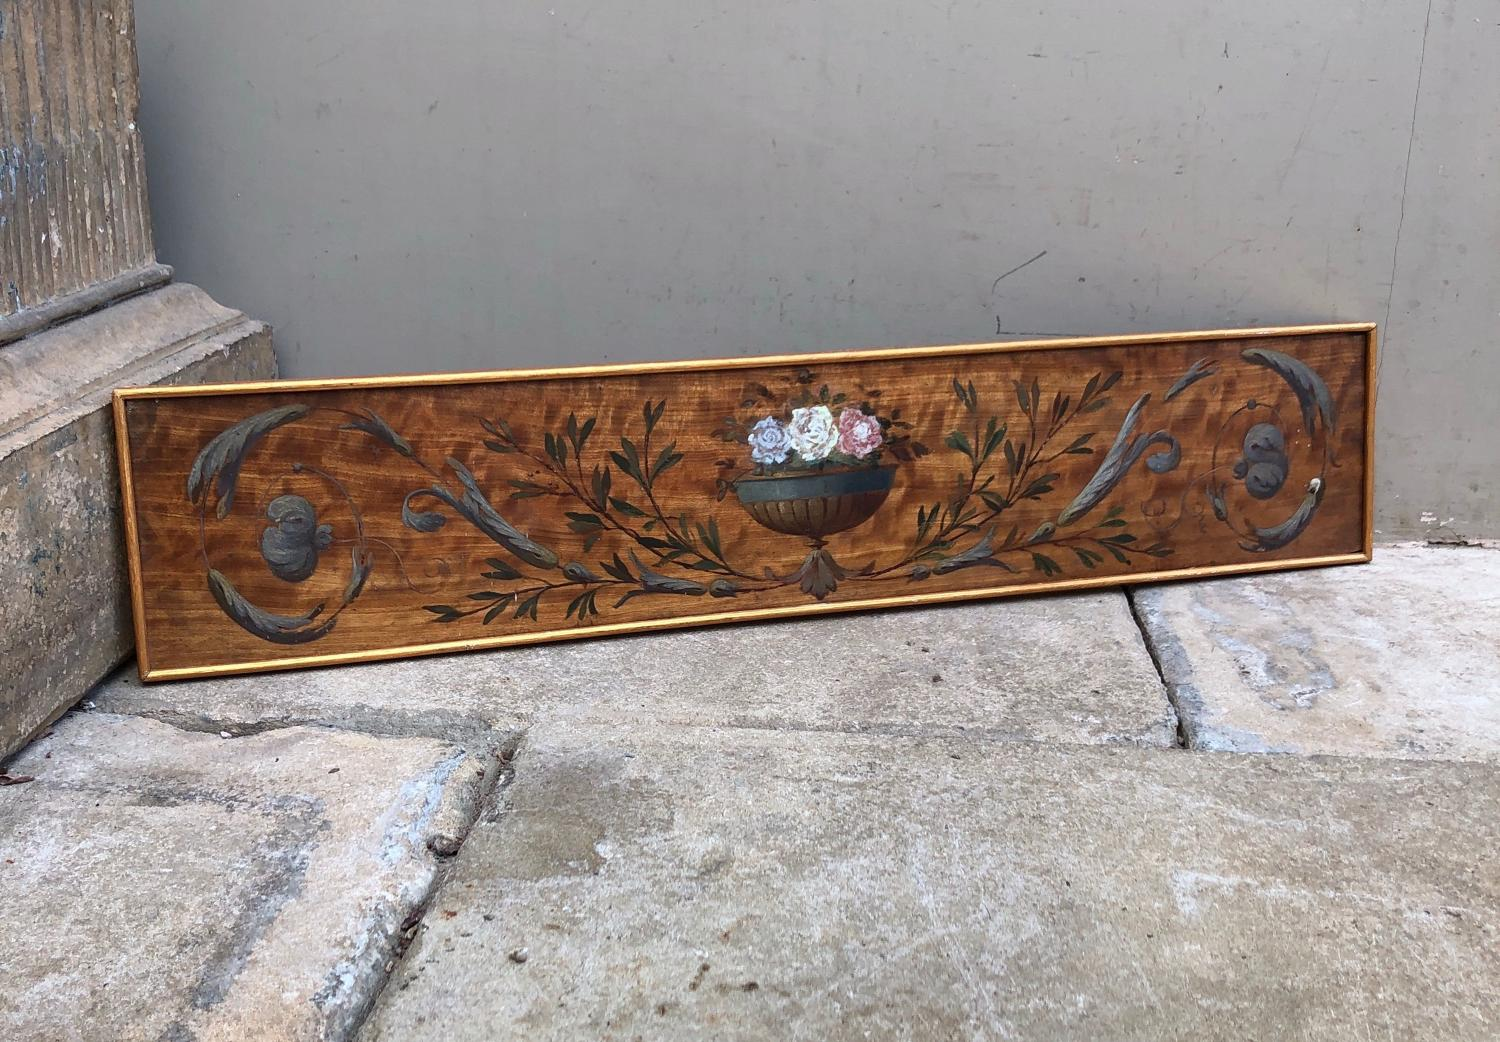 Early 20th Century Hand Painted Decorative Panel-Urn Flowers & Swags